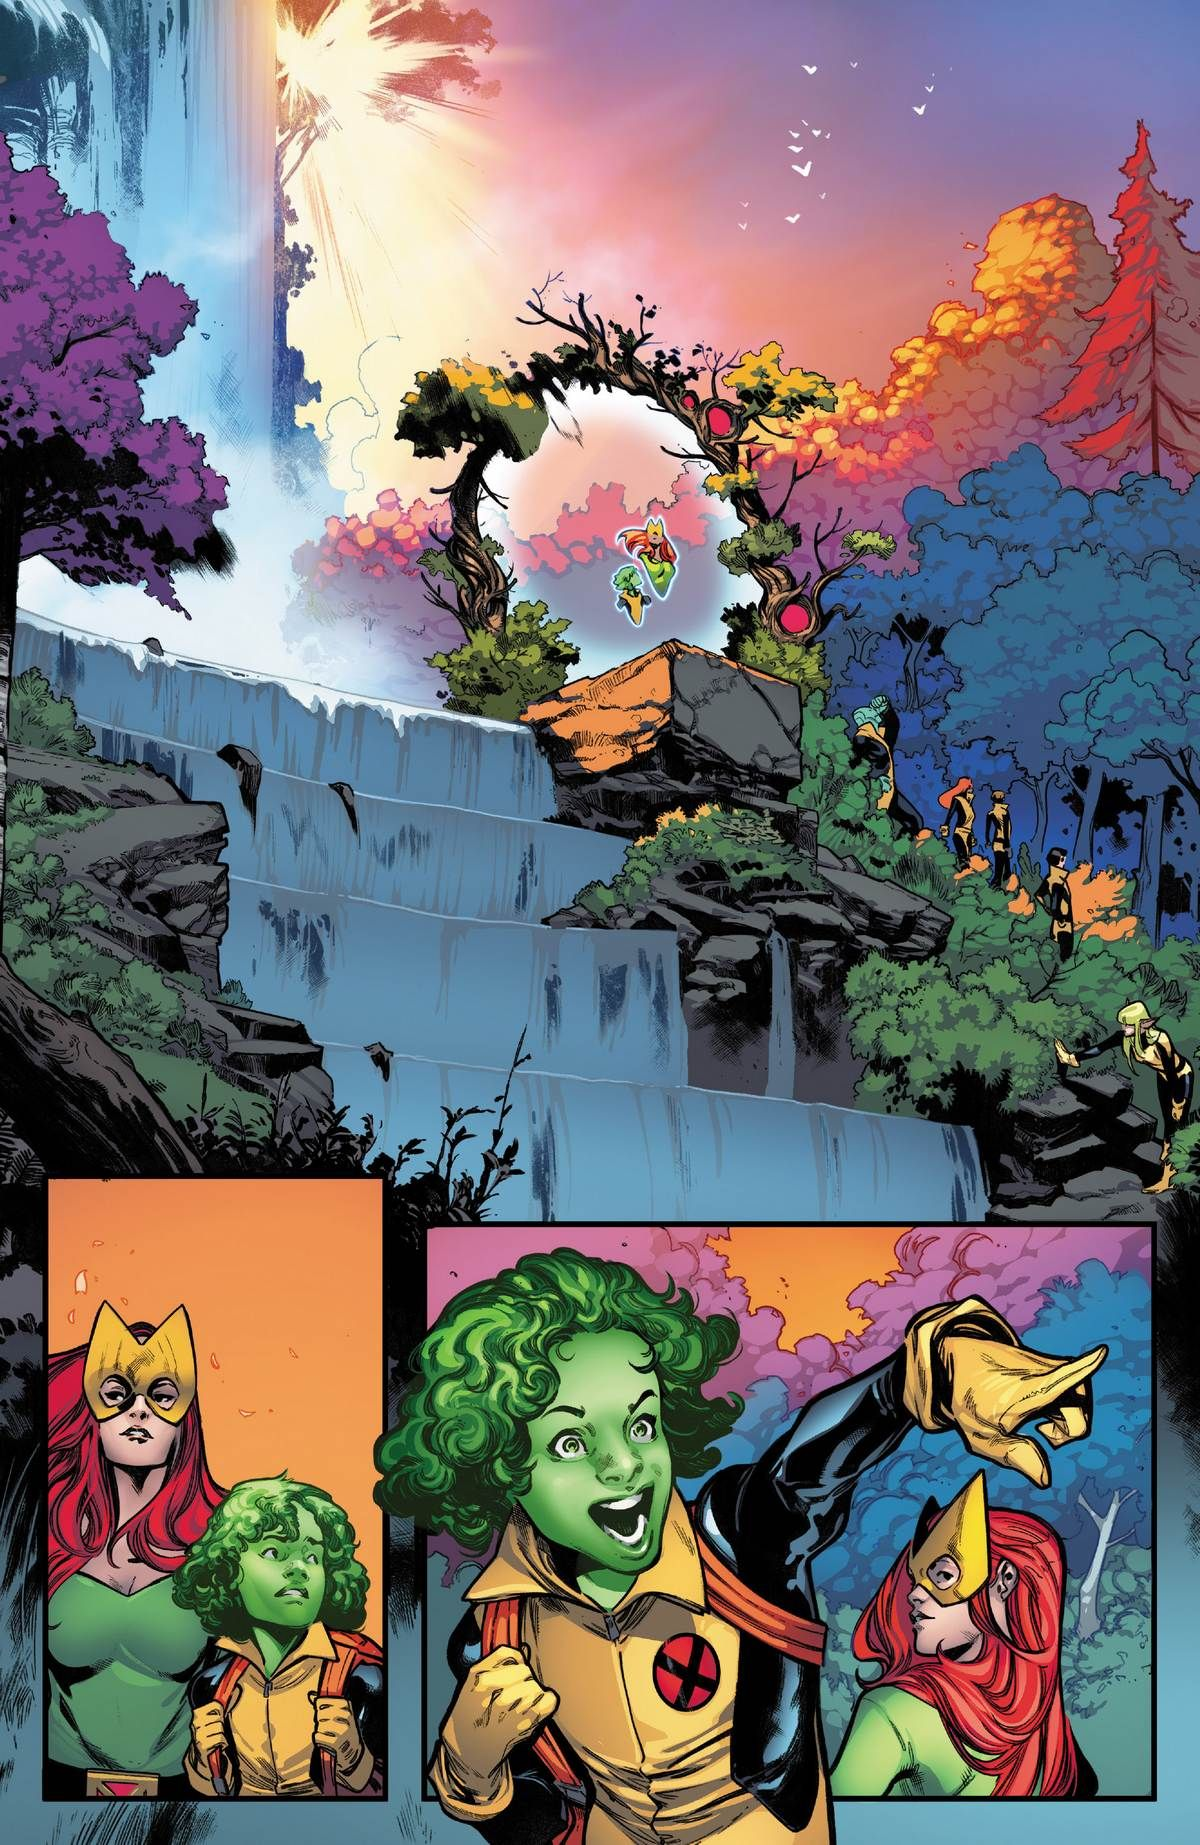 Full Issue Of House Of X Issue 1 Online In 2020 Marvel X Men Comics